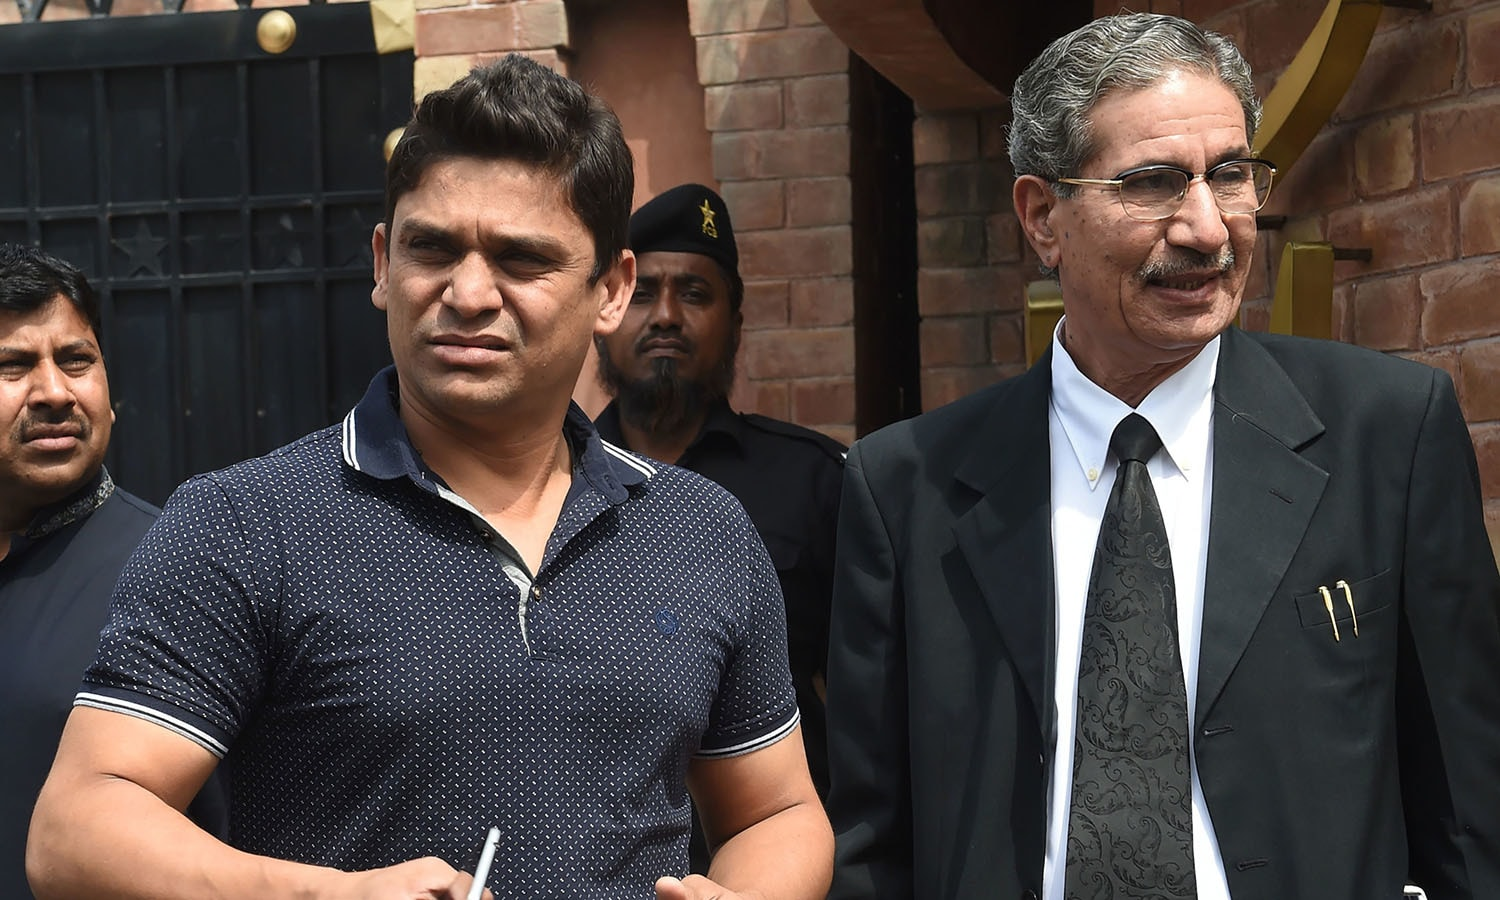 Suspended Pakistani cricketer Khalid Latif (L) leaves with his lawyer after appearing before a tribunal in Lahore.─AFP